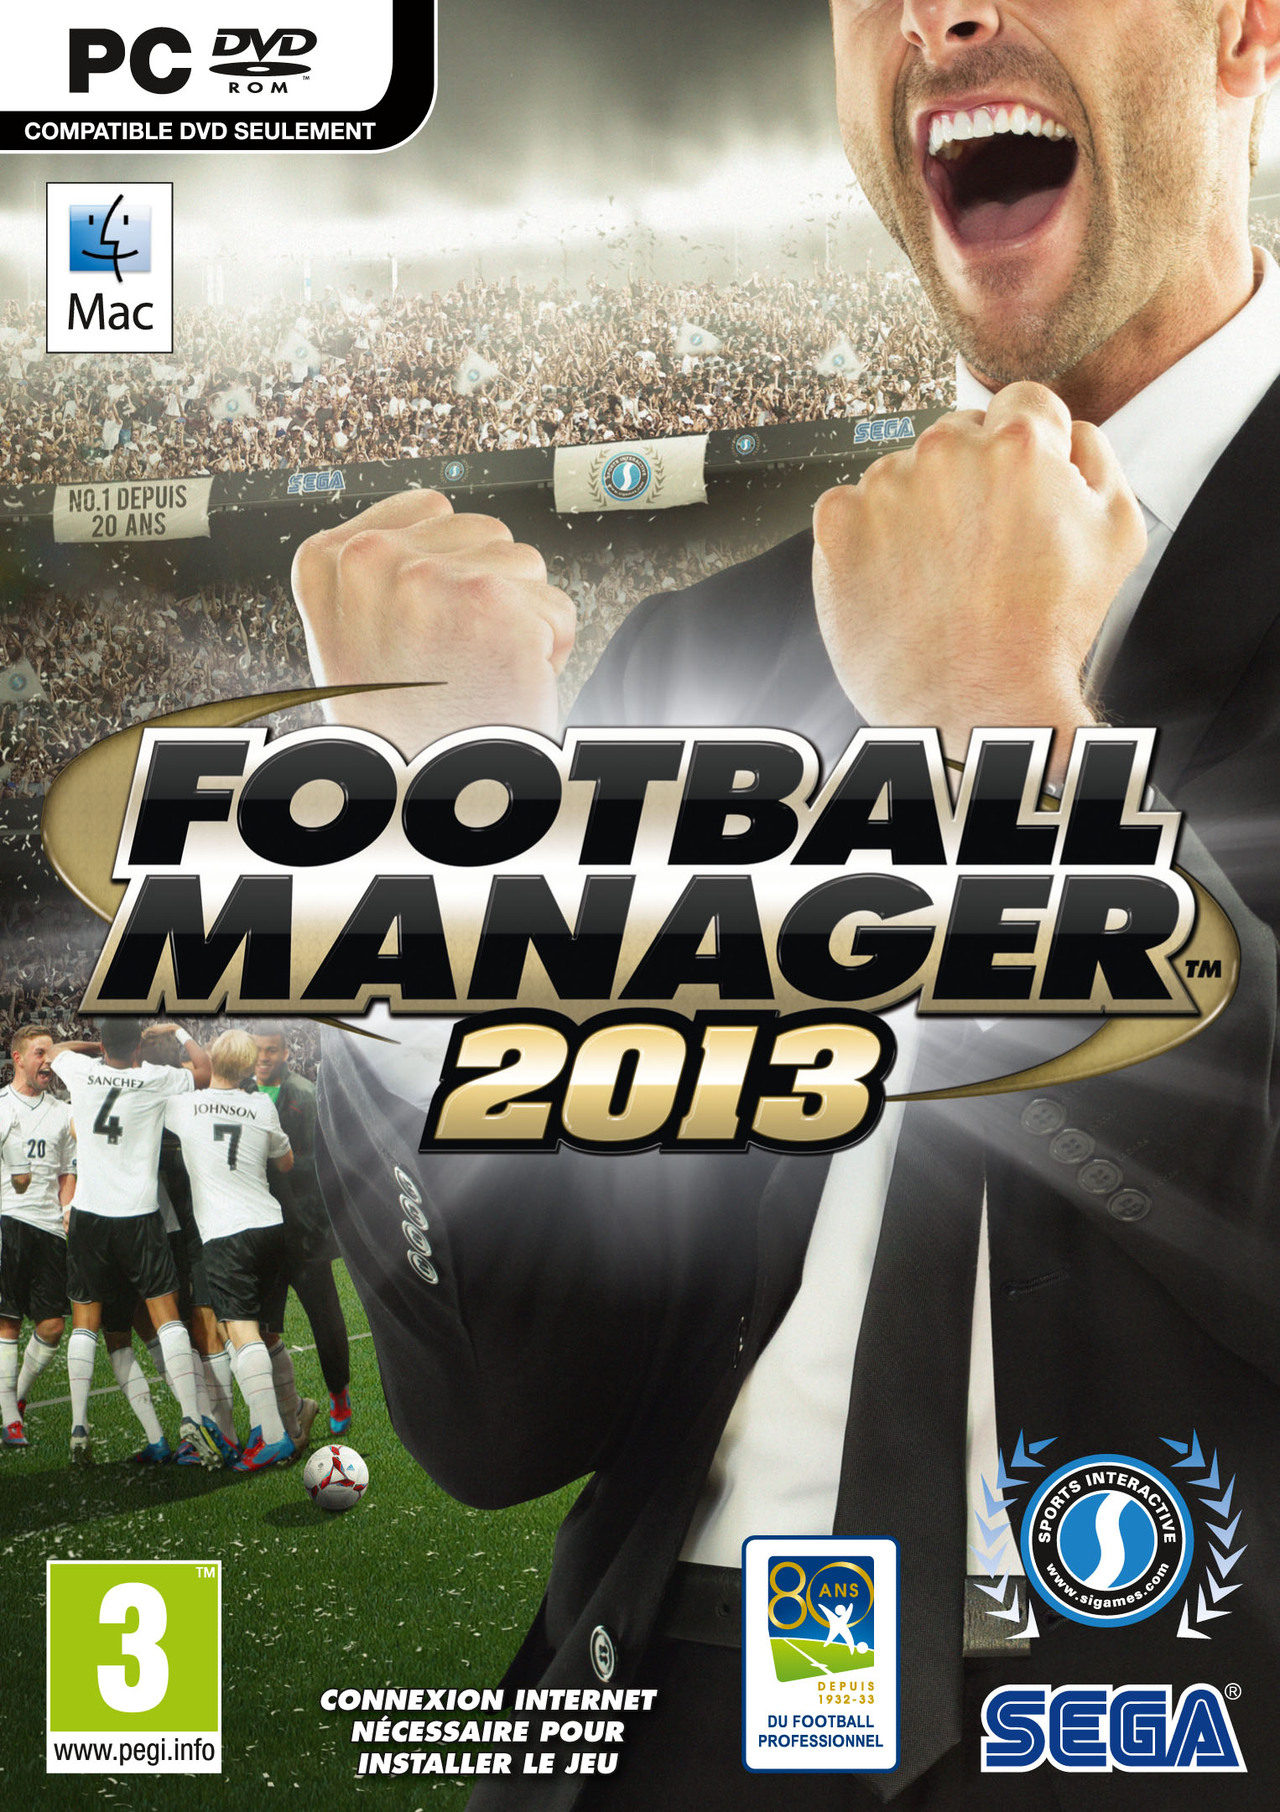 FootballManager2013 Multi Jaquette 001